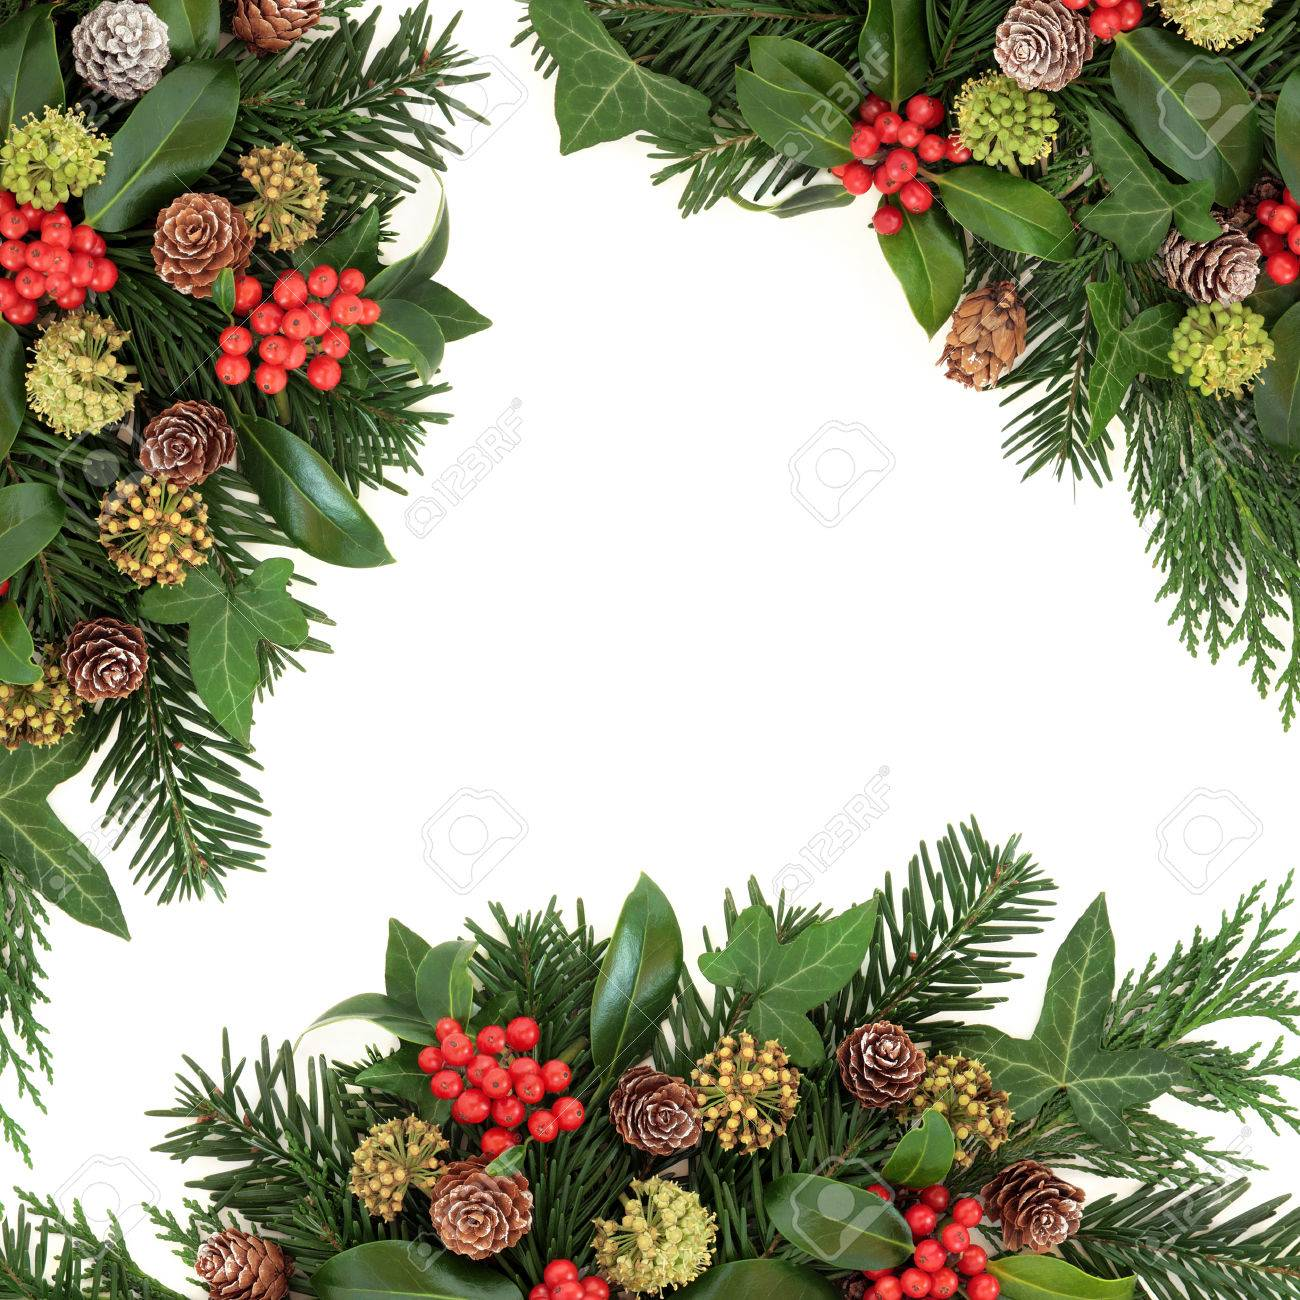 Why is holly a traditional christmas decoration - Traditional Winter And Christmas Background Border With Flora Of Holly Ivy Cedar Cypress